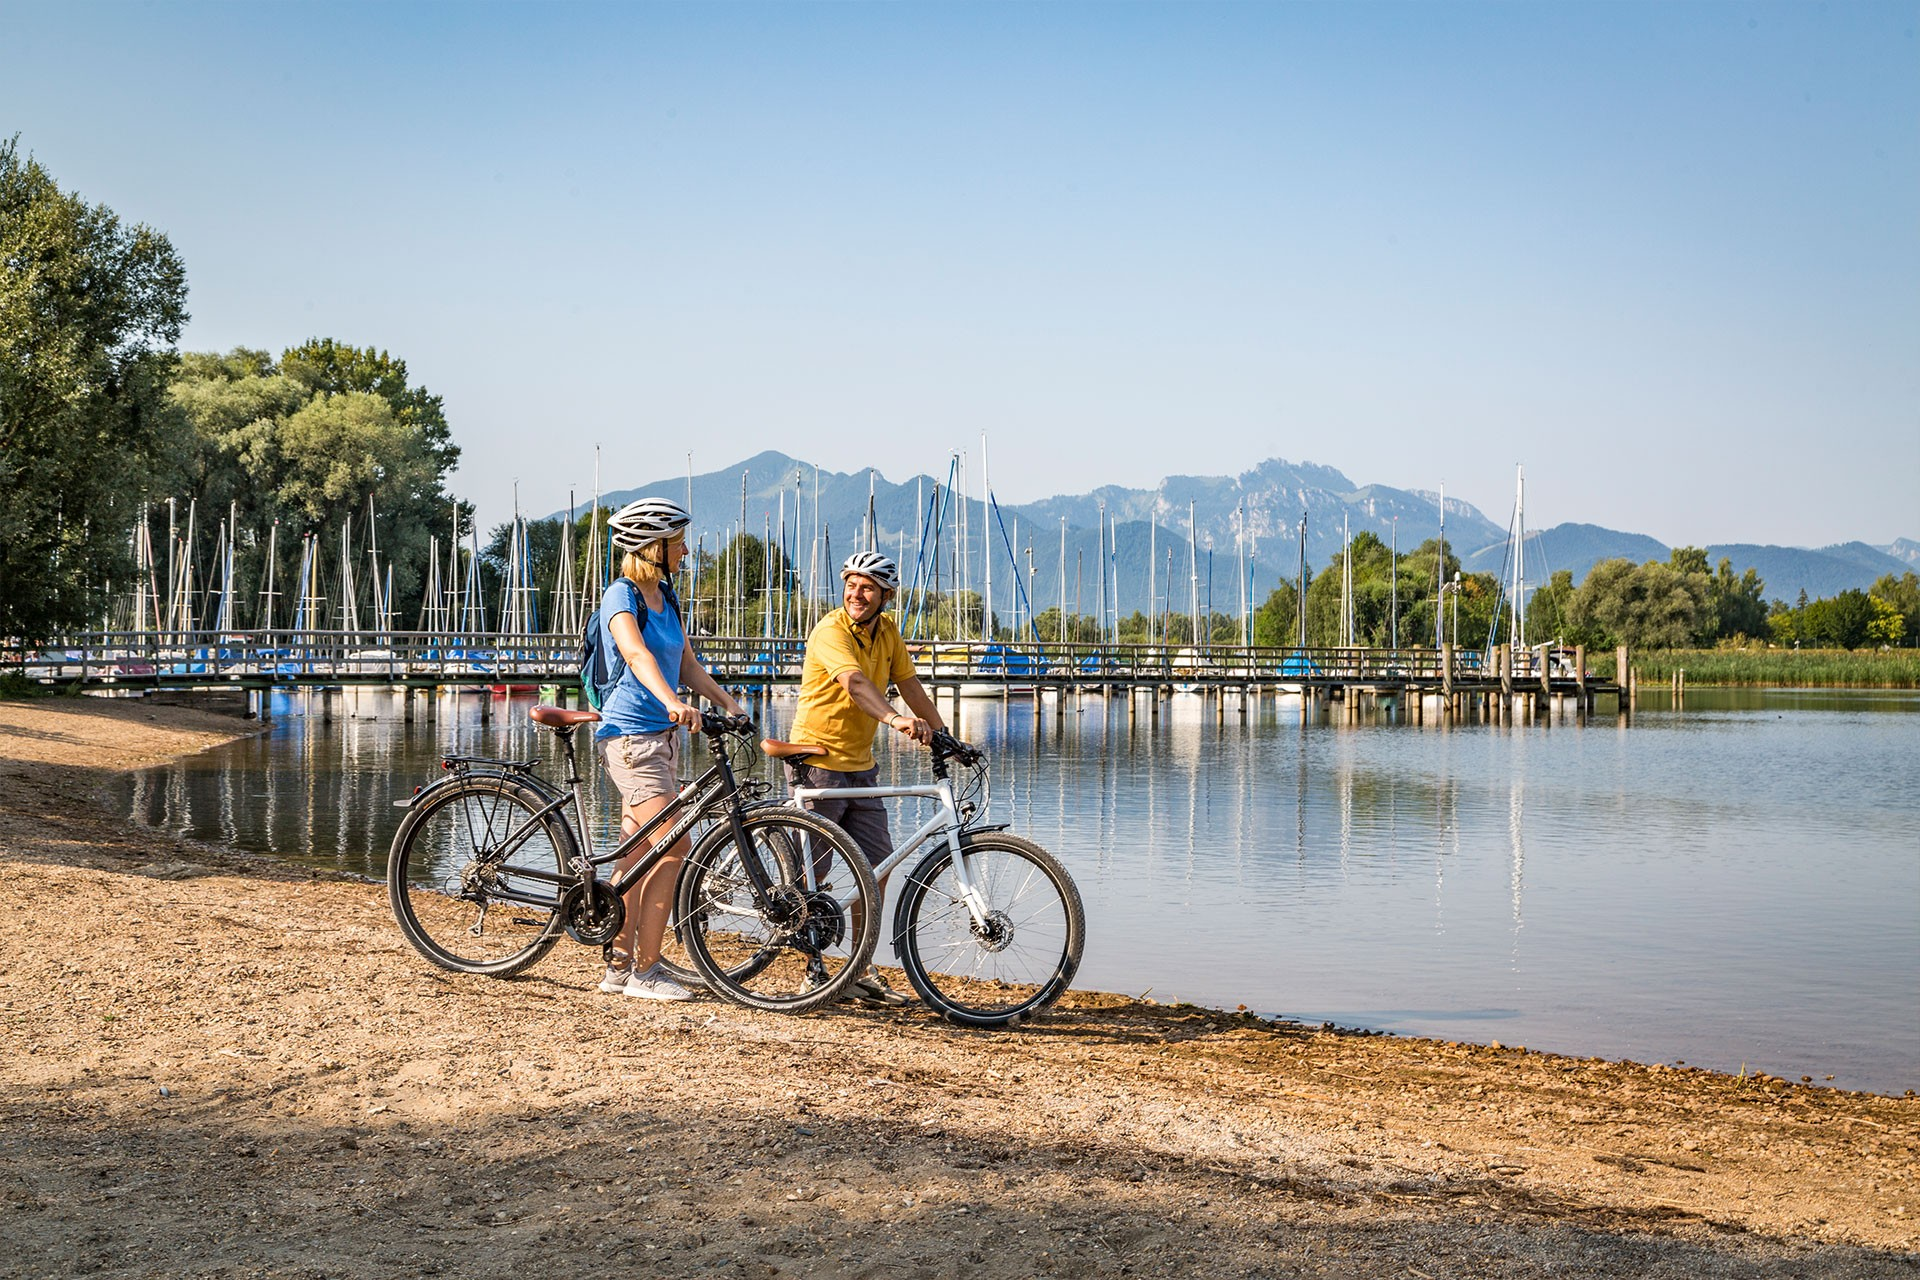 Cycling at the Chiemsee